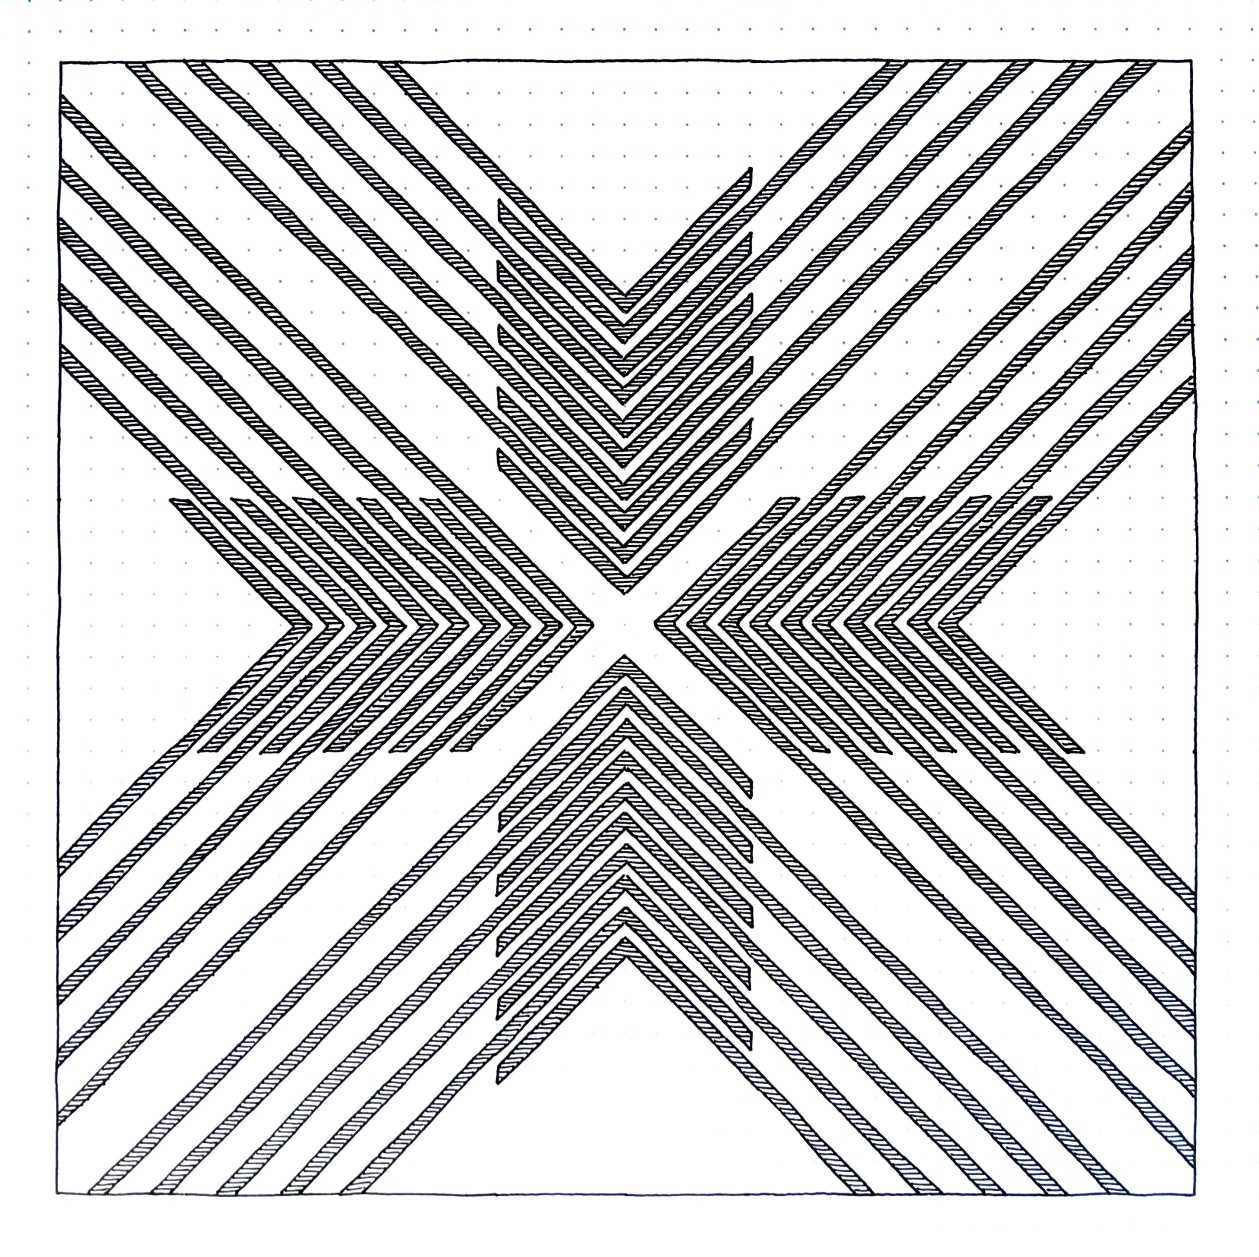 Geometriquilt: Sunday sketch #152